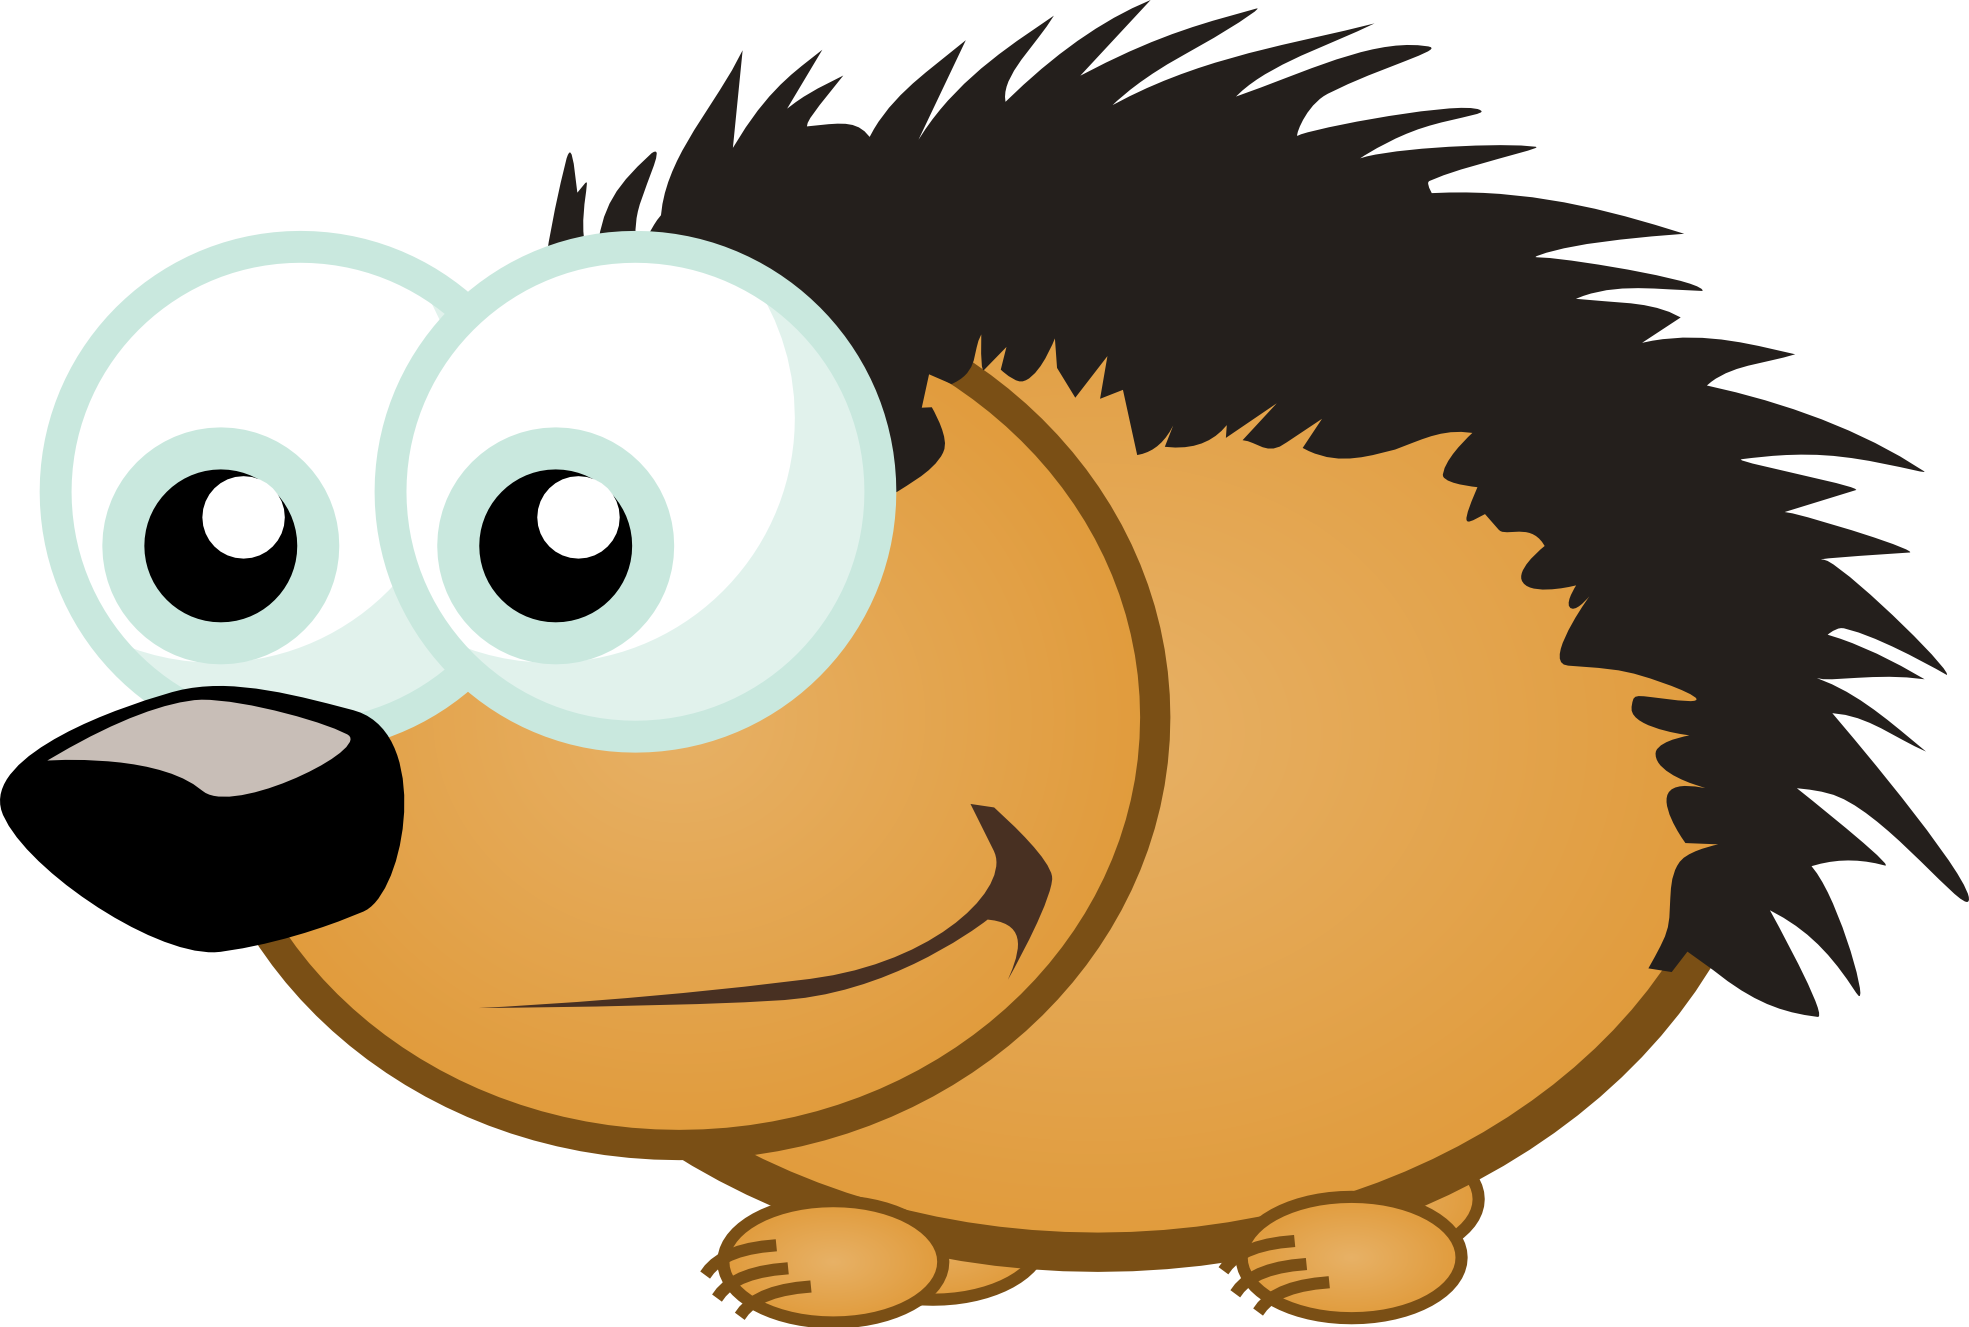 Porcupine clipart #9, Download drawings